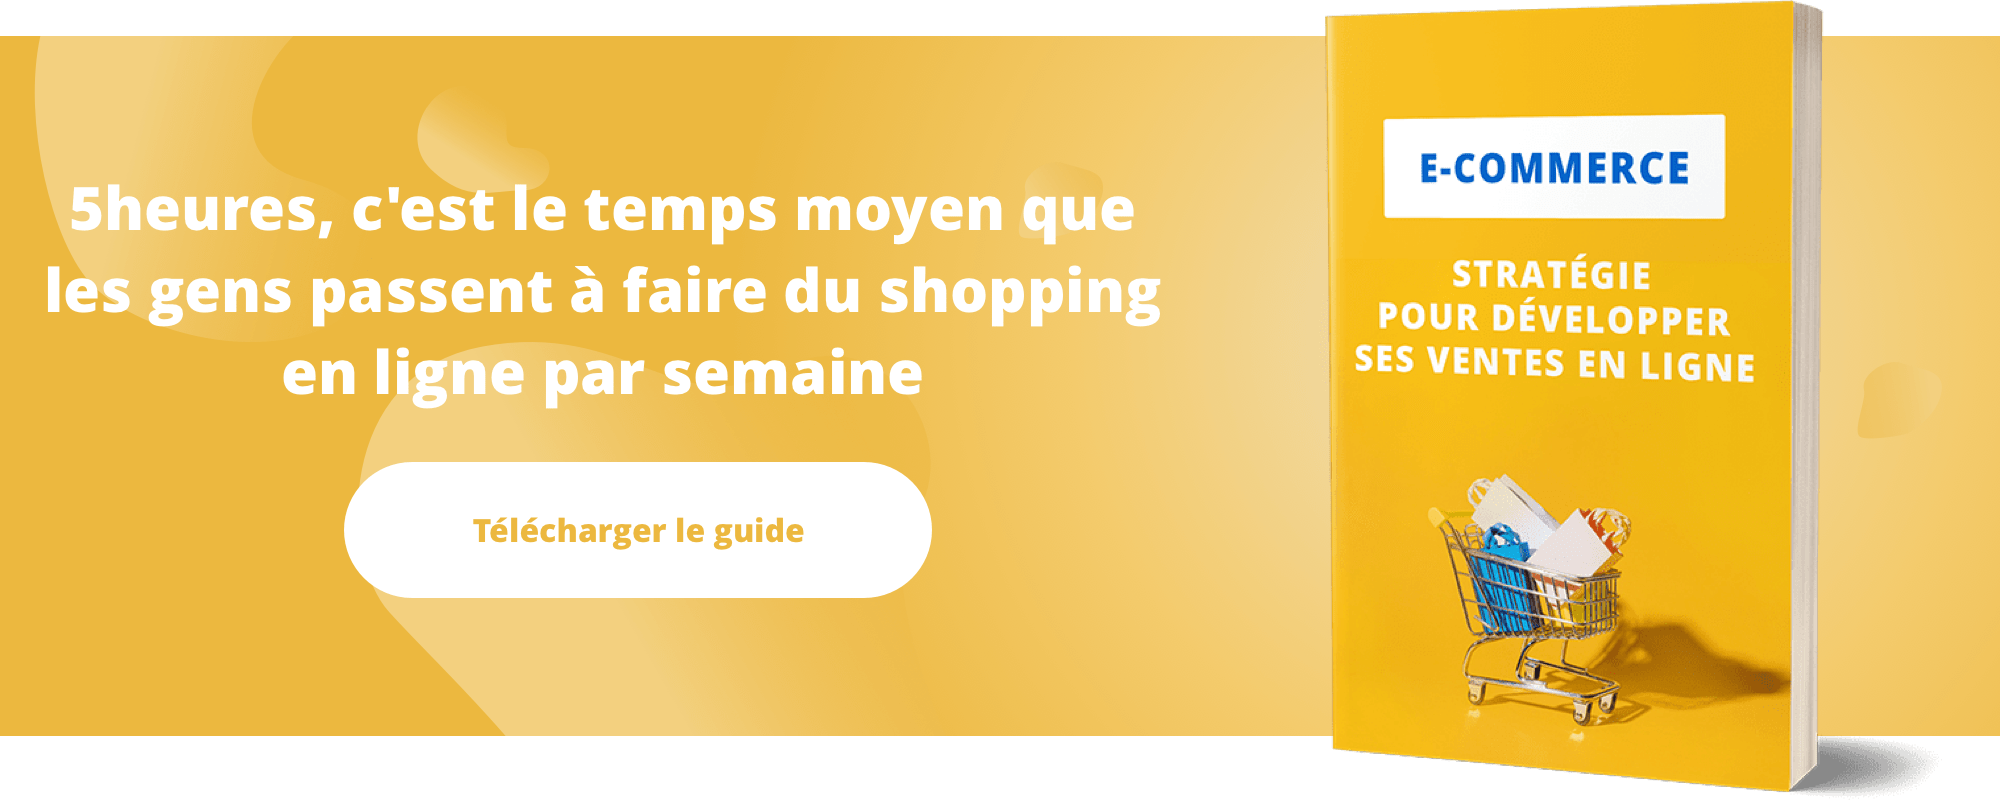 ebook-e-commerce-agence-digitale-orbiteo